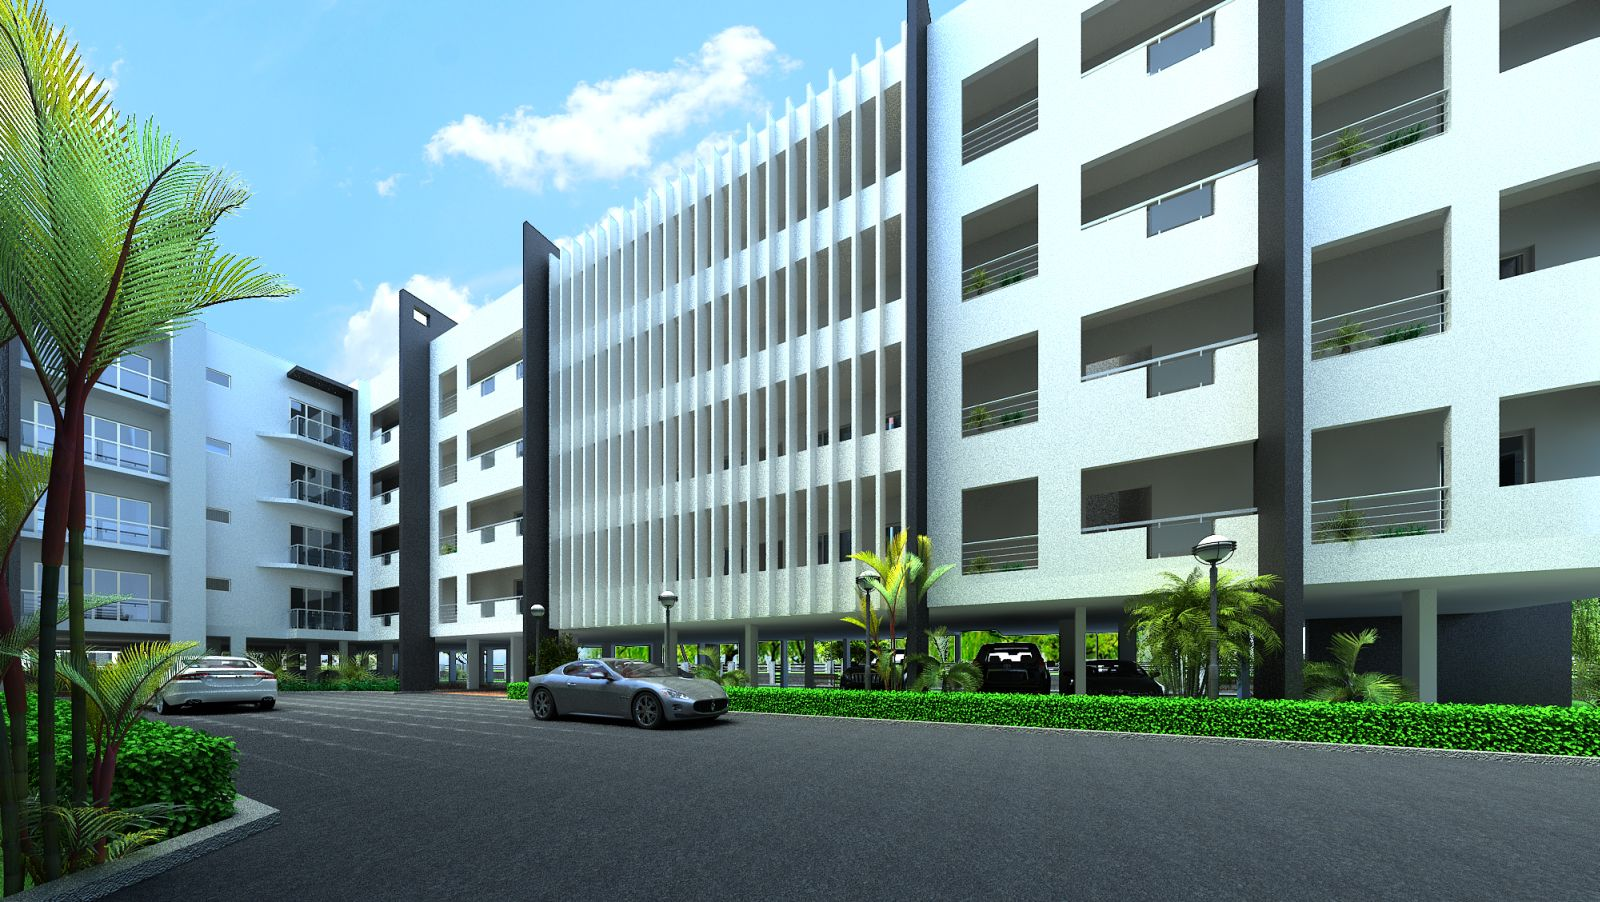 Infrany Petals - Apartments in Bangalore.